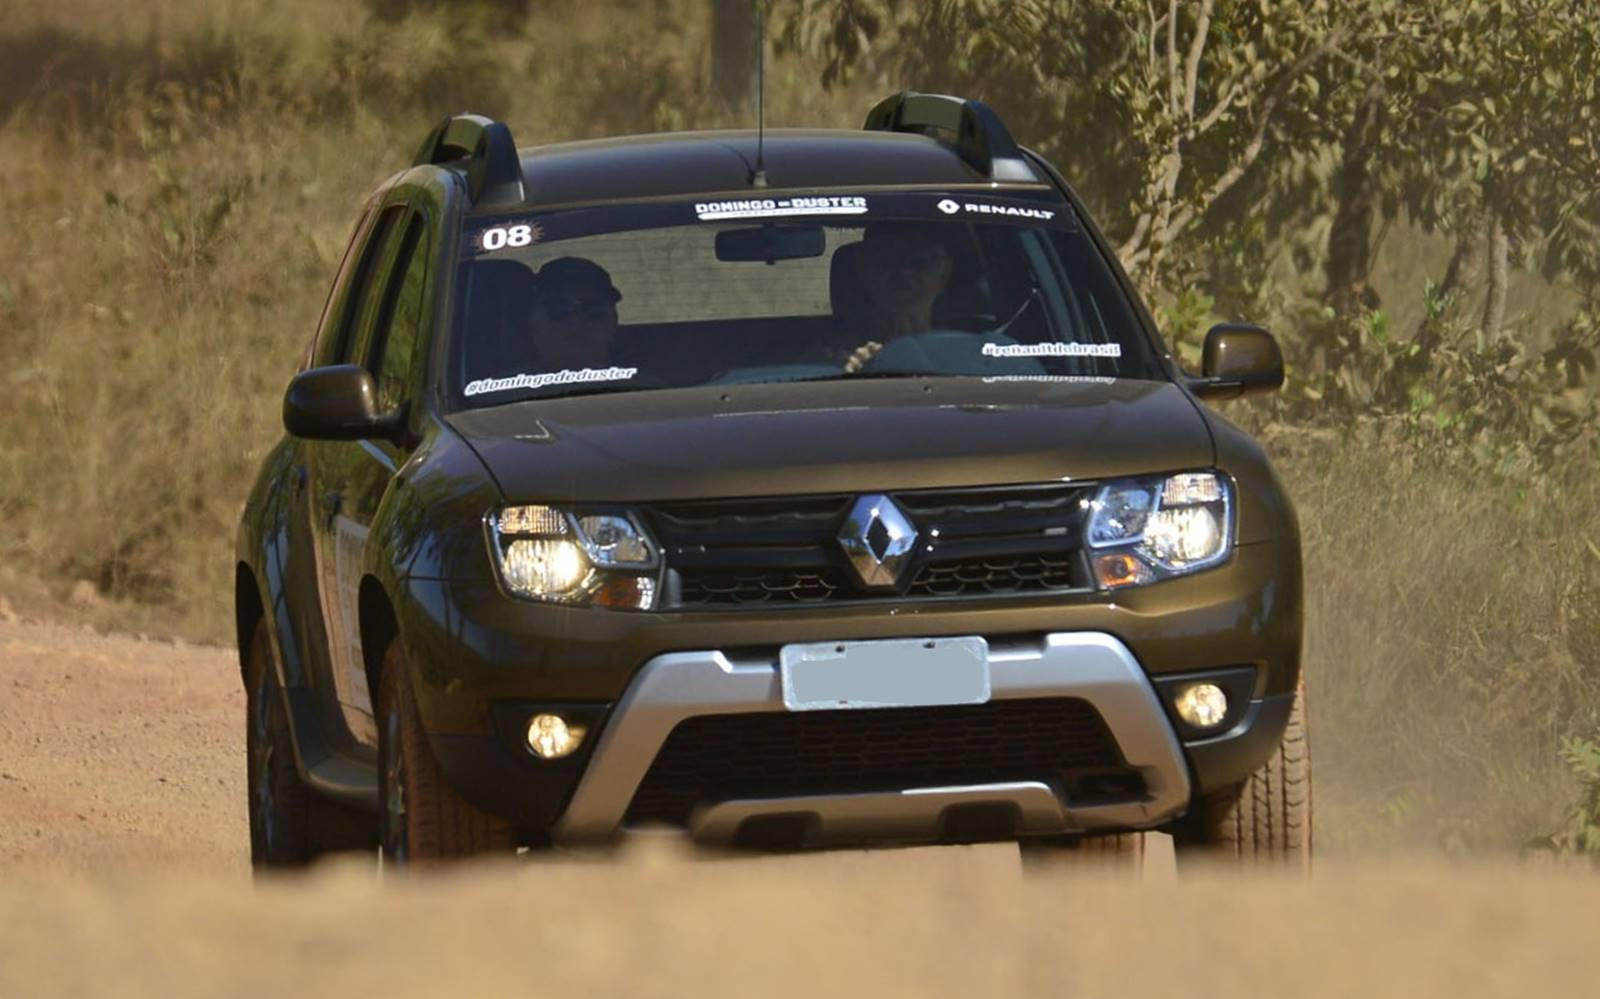 renault duster 2017 tabela de pre os fotos especifica es car blog br. Black Bedroom Furniture Sets. Home Design Ideas